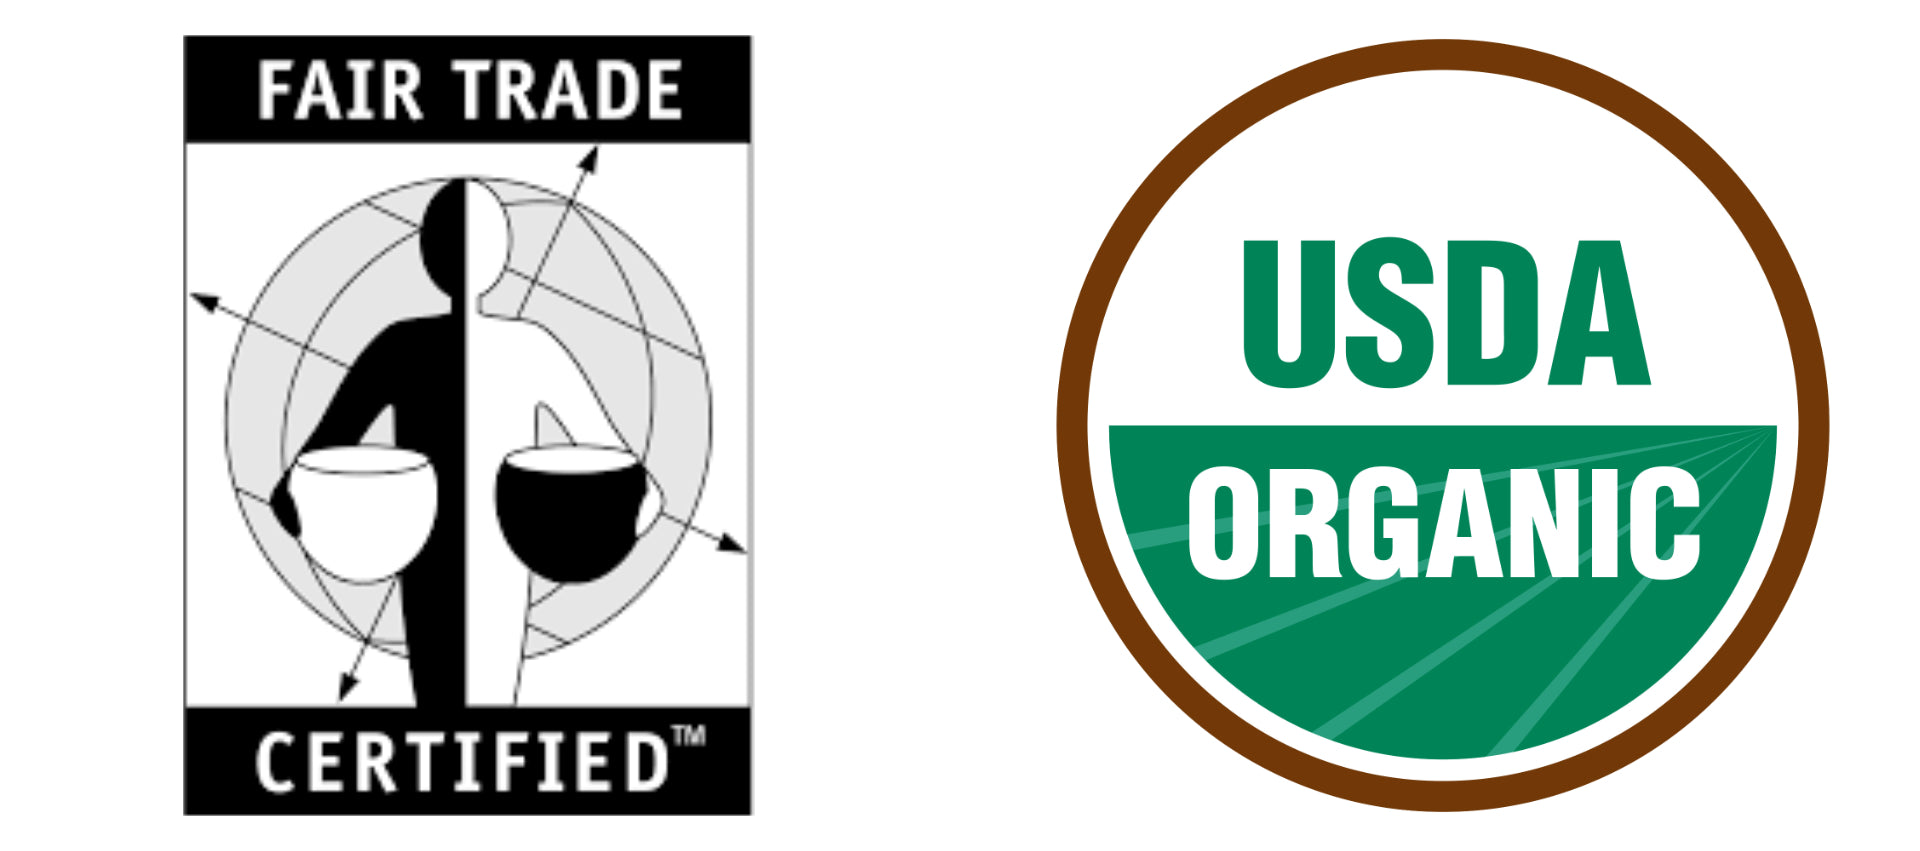 Fair Trade Certified and USDA Organic